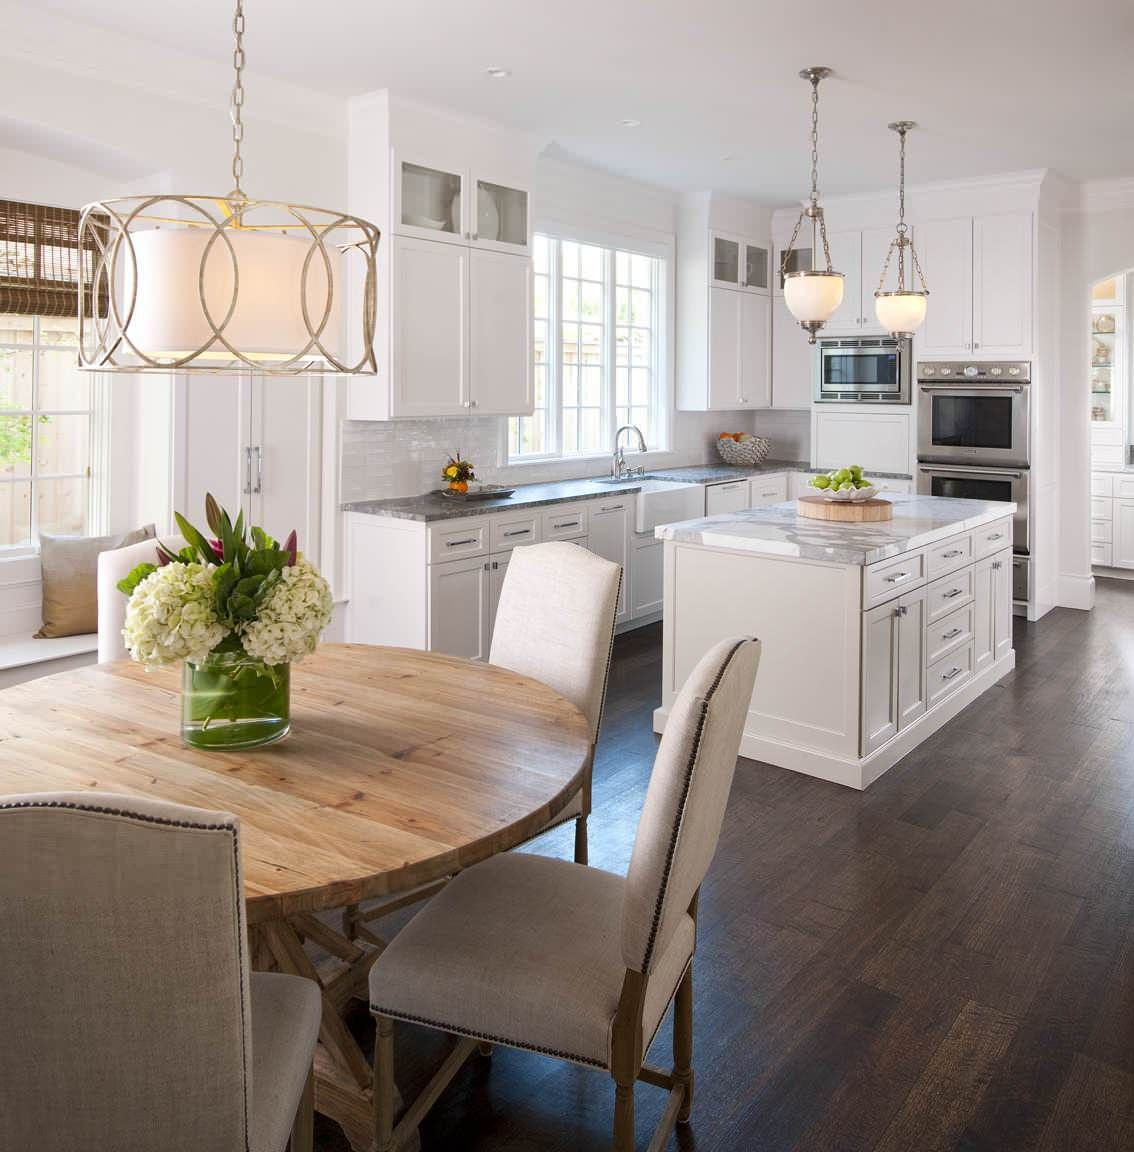 30 Beautiful And Inspiring Light Filled Kitchens With: Floor To Ceiling White Cabinet Granite Countertop Wooden